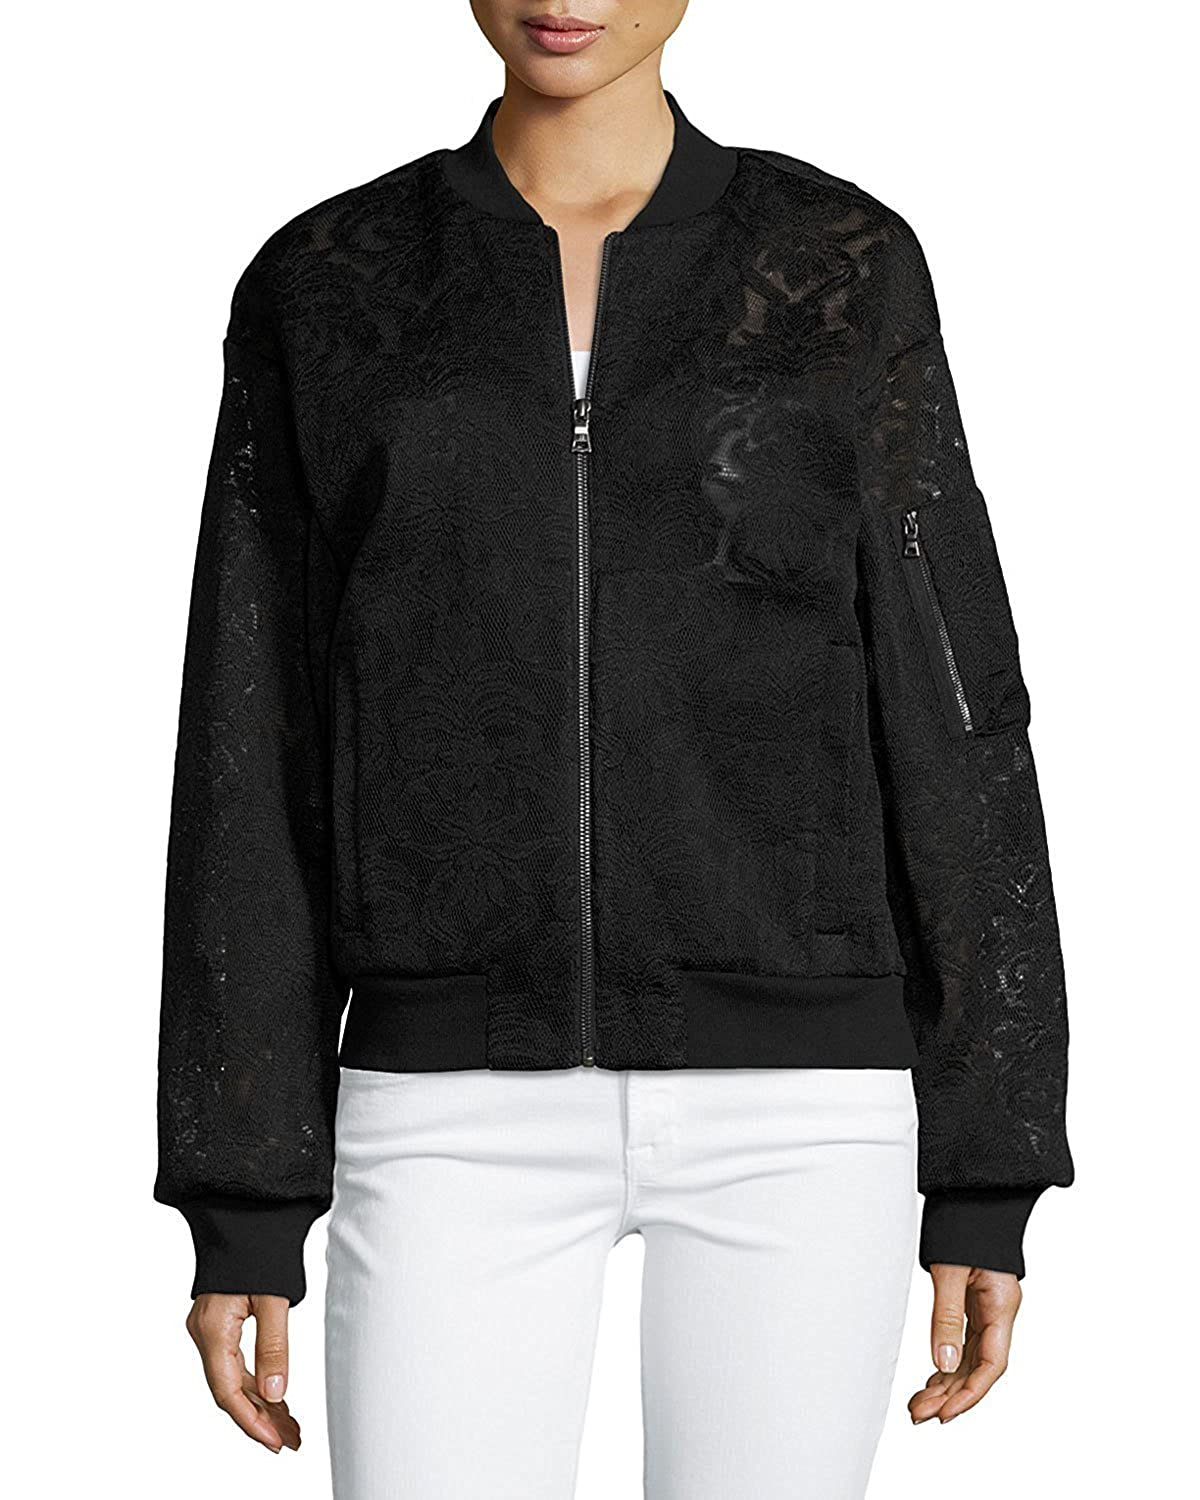 BCBGMAXAZRIA Brice Lace Embroidered Bomber Jacket Black) 00_EXSMB3XB_SD